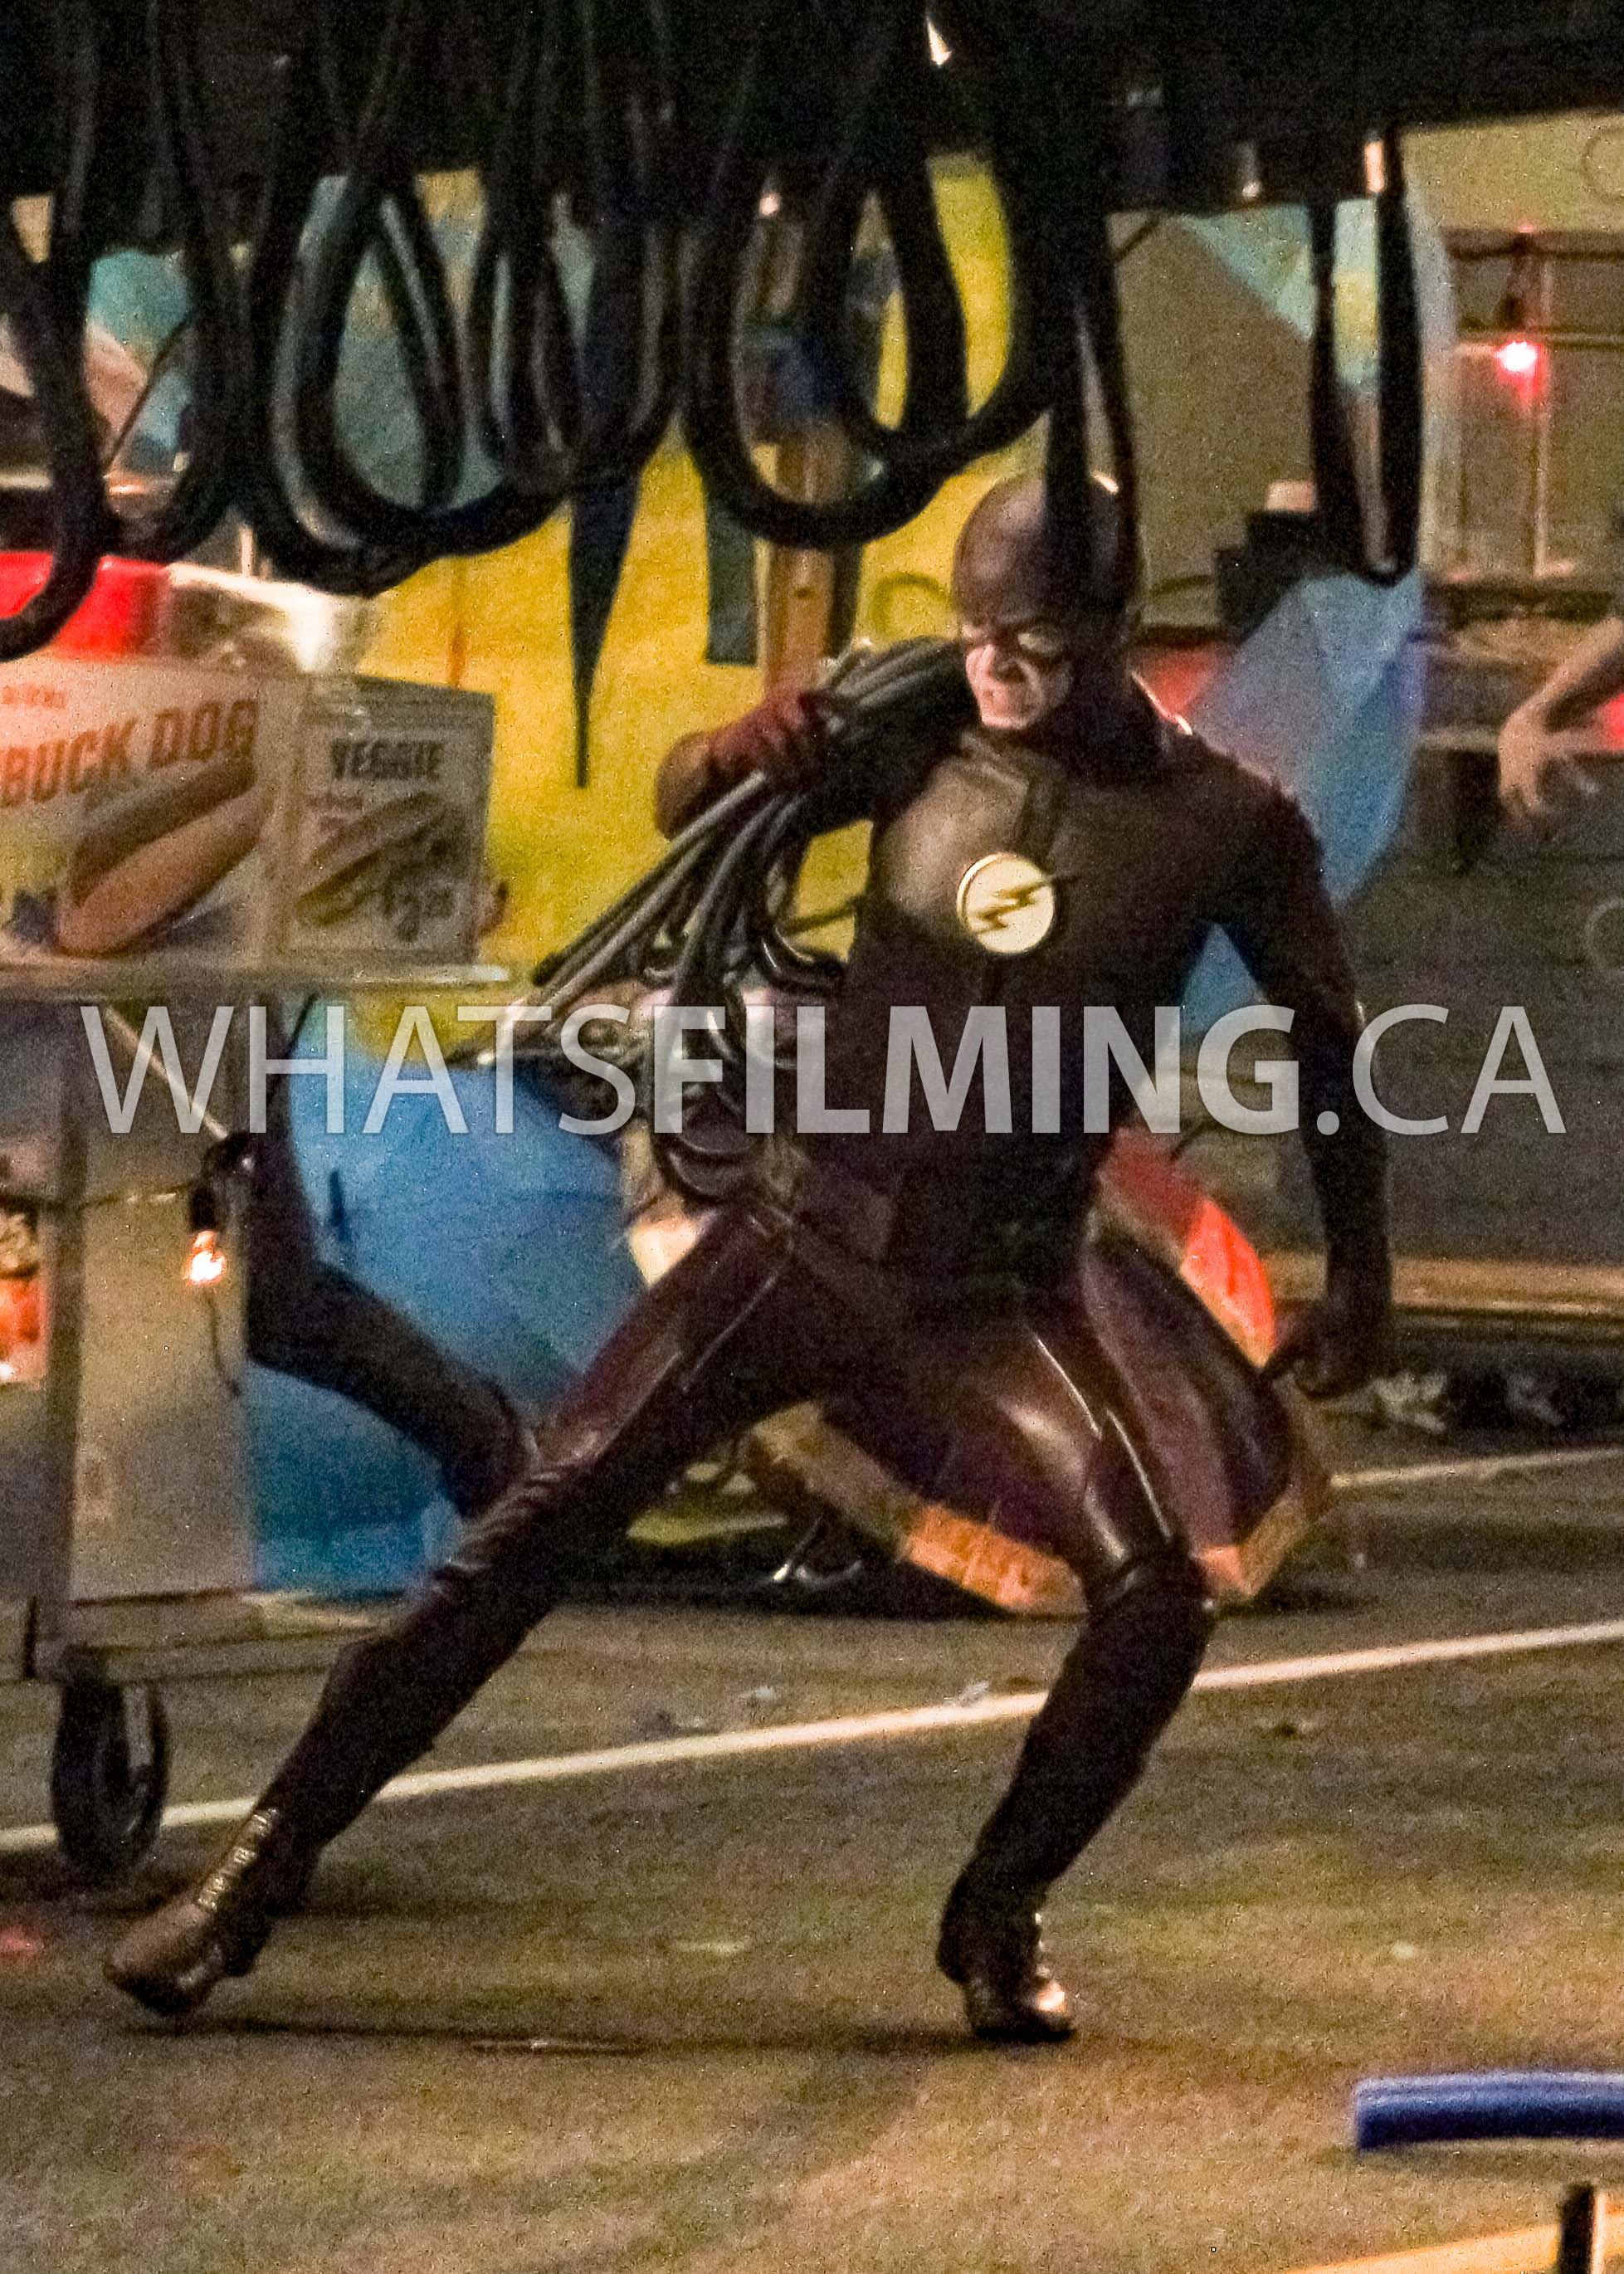 Action shot of The Flash with rope on his shoulder